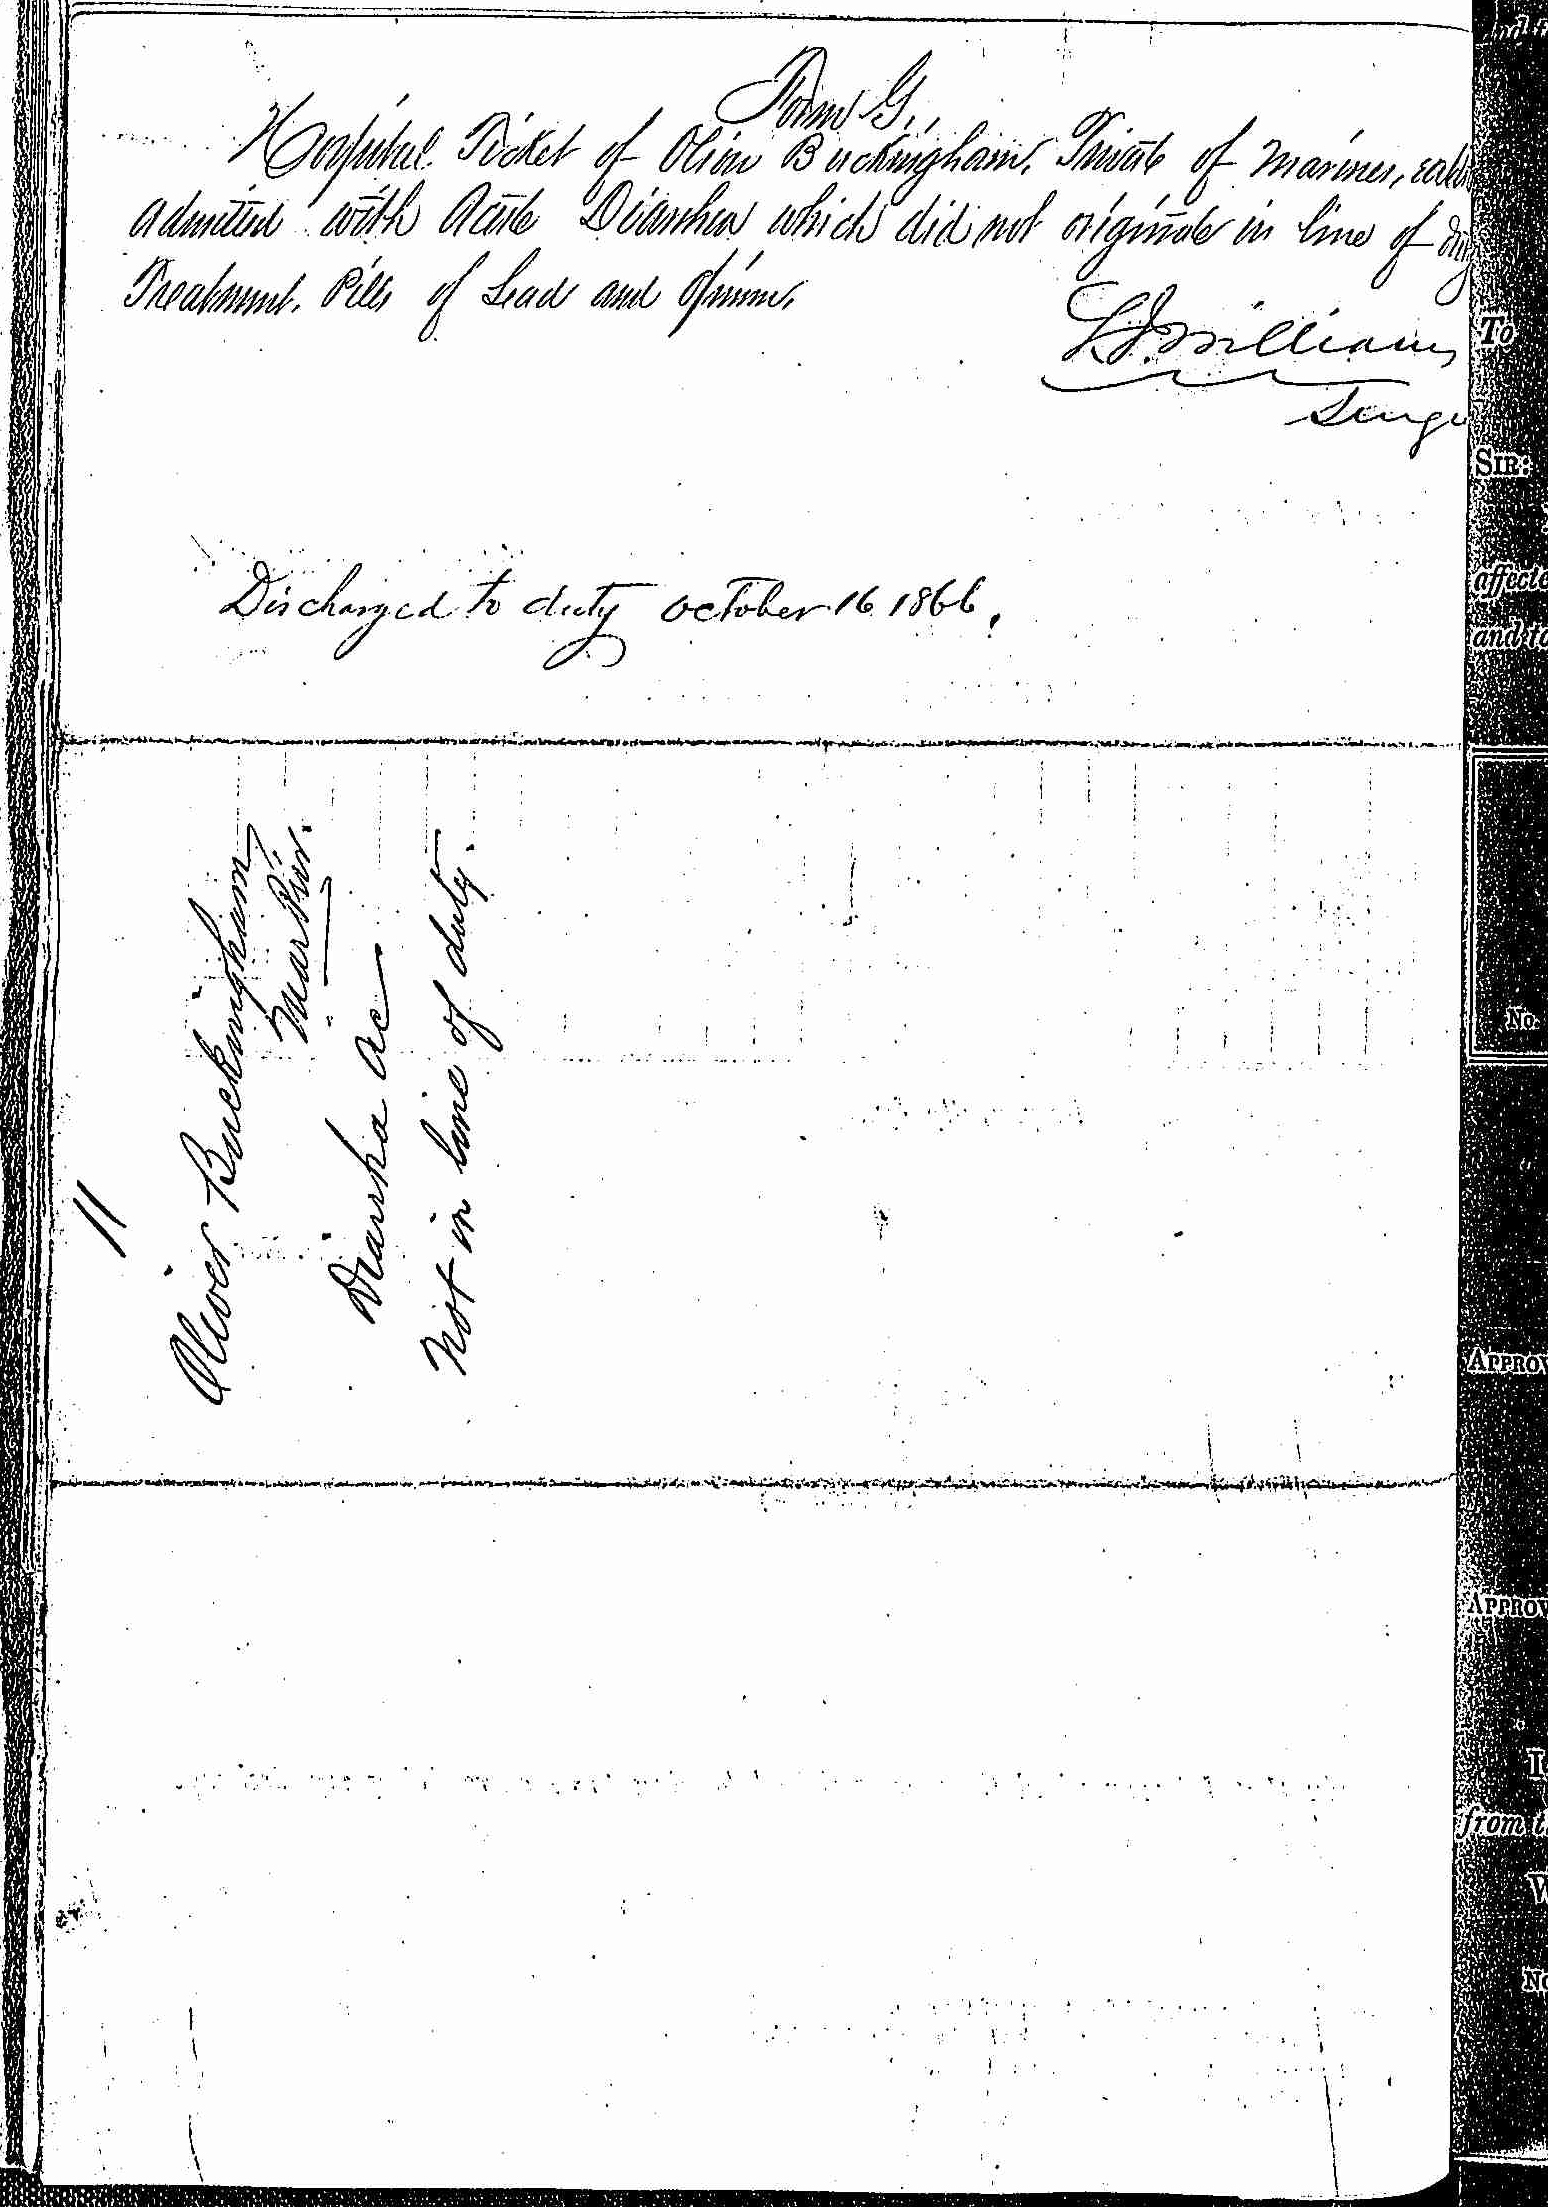 Entry for Oliver Buckingham (page 2 of 2) in the log Hospital Tickets and Case Papers - Naval Hospital - Washington, D.C. - 1865-68